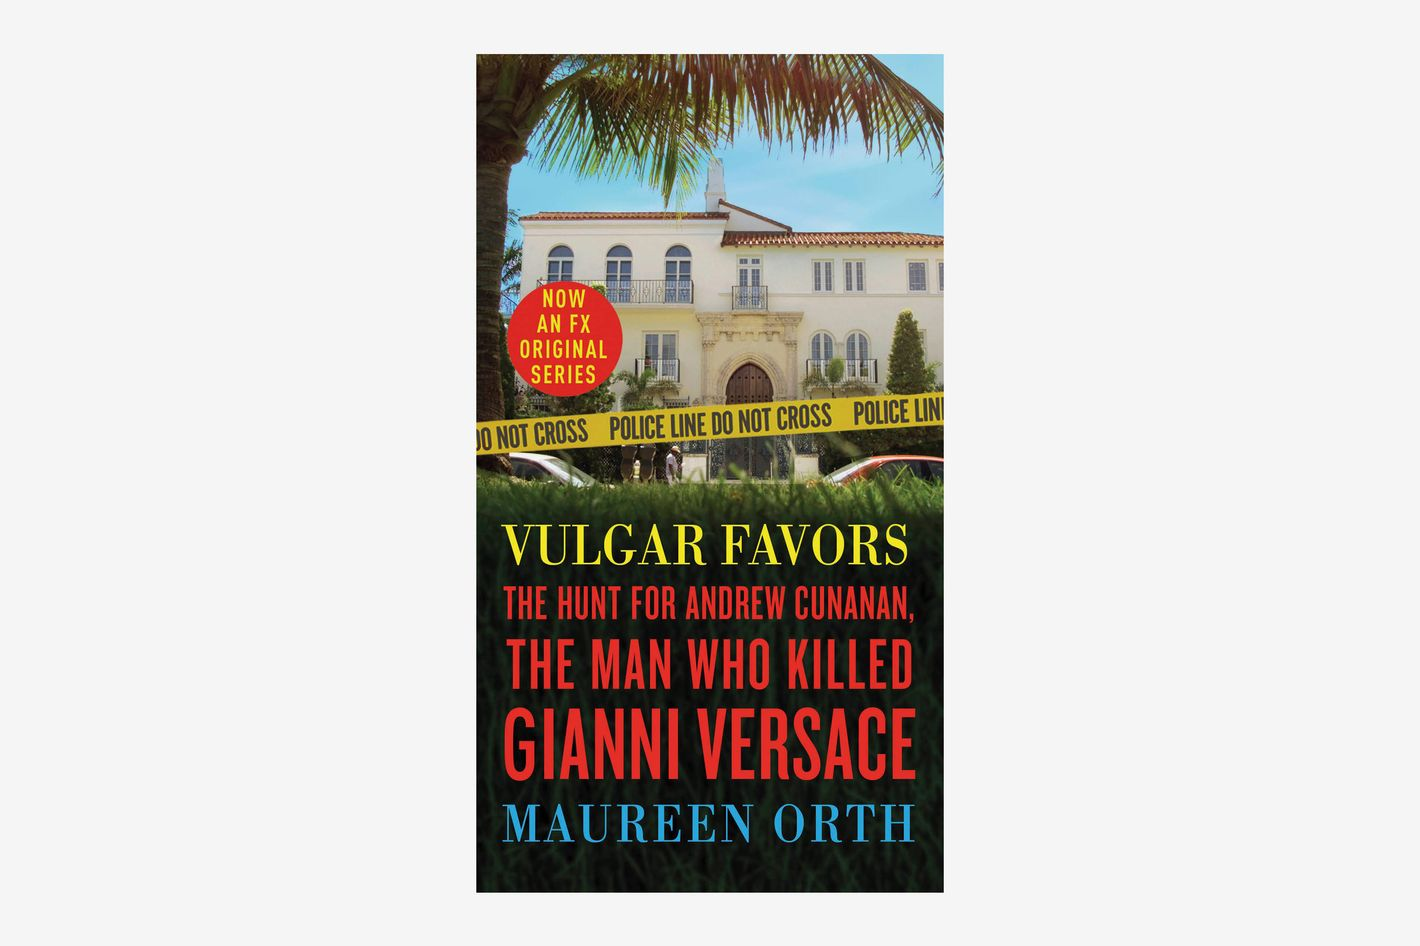 Vulgar Favors: The Hunt for Andrew Cunanan by Maureen Orth